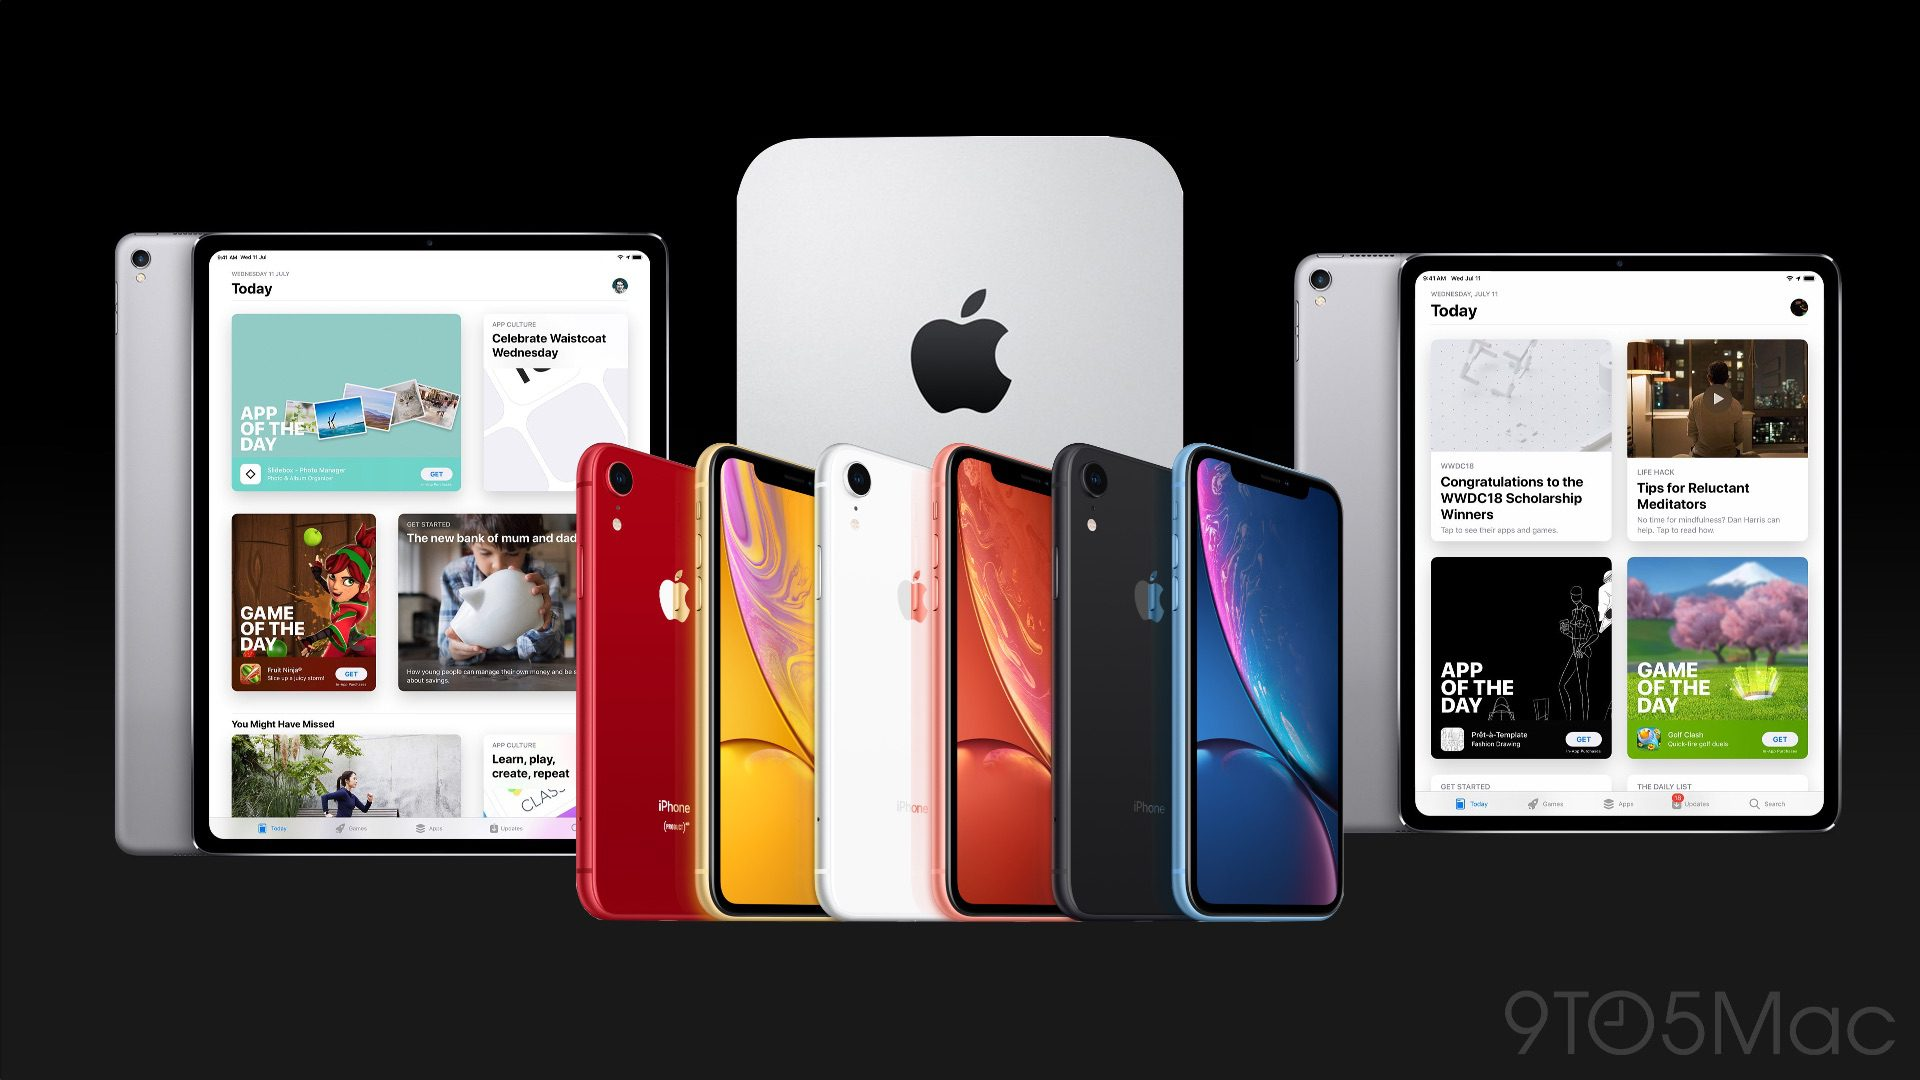 Apple Keynote: z mrtvých vstanou dva produkty, iPad mini 5 a AirPower